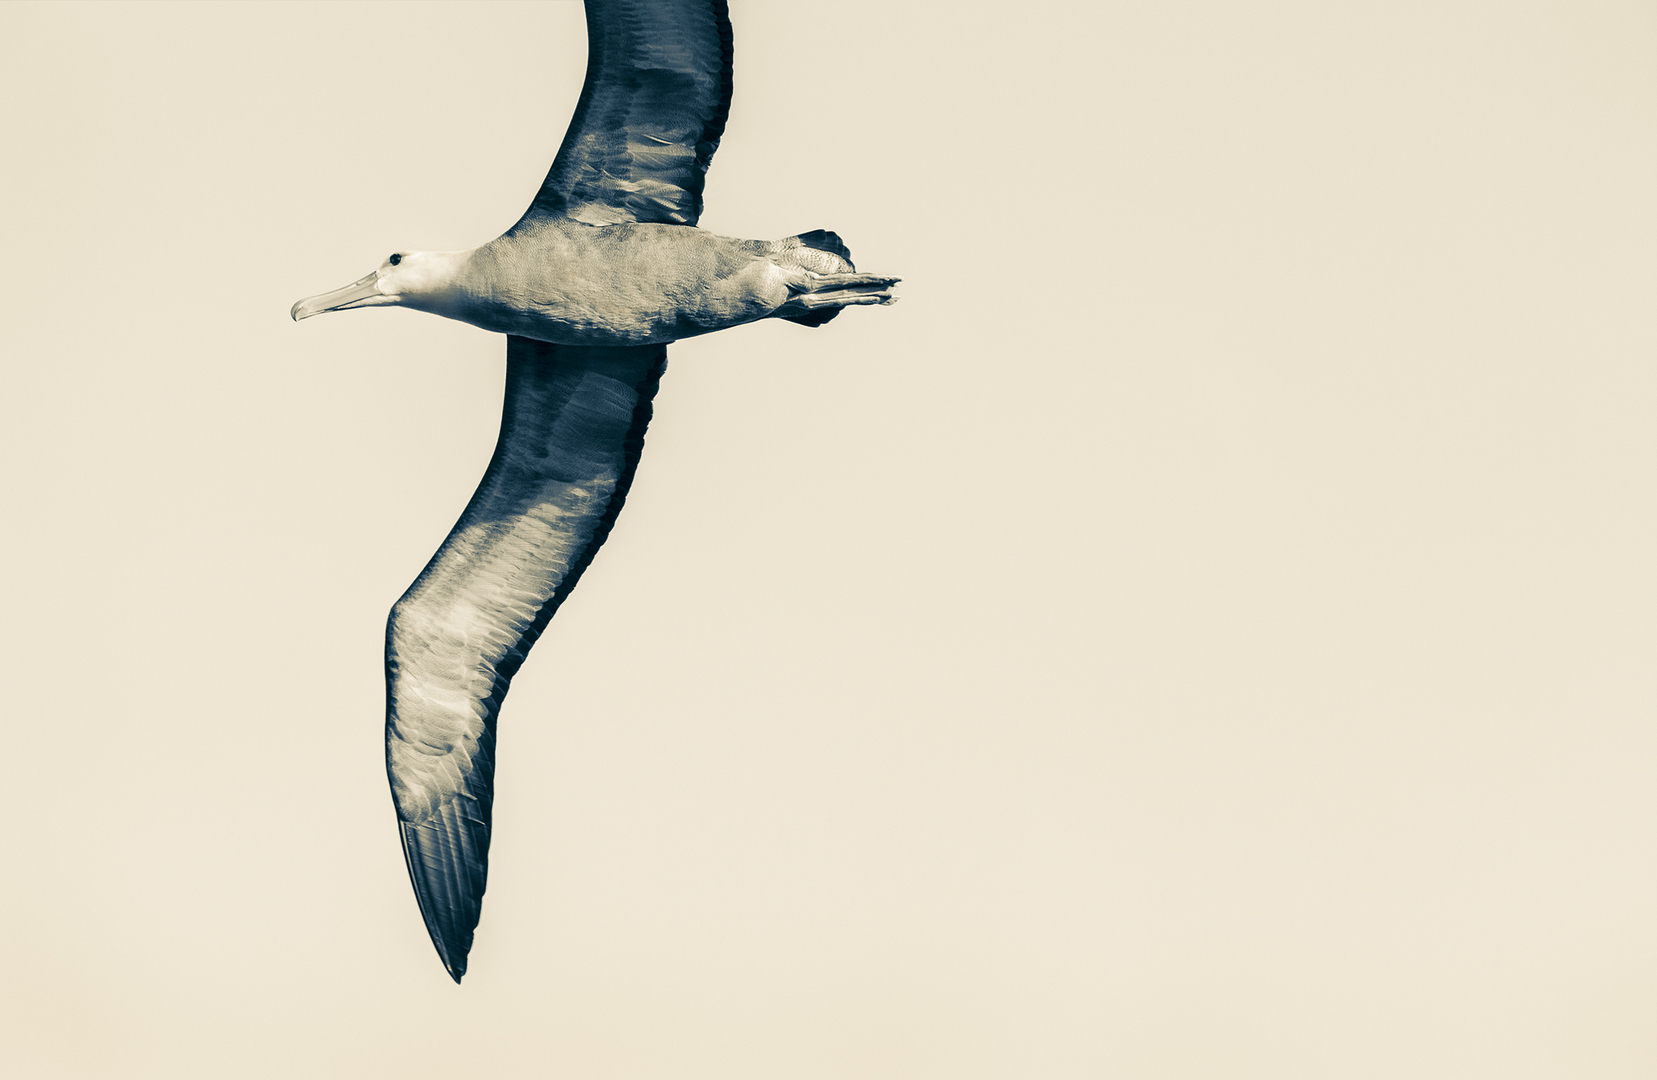 A black-and-white picture of a flying seagull